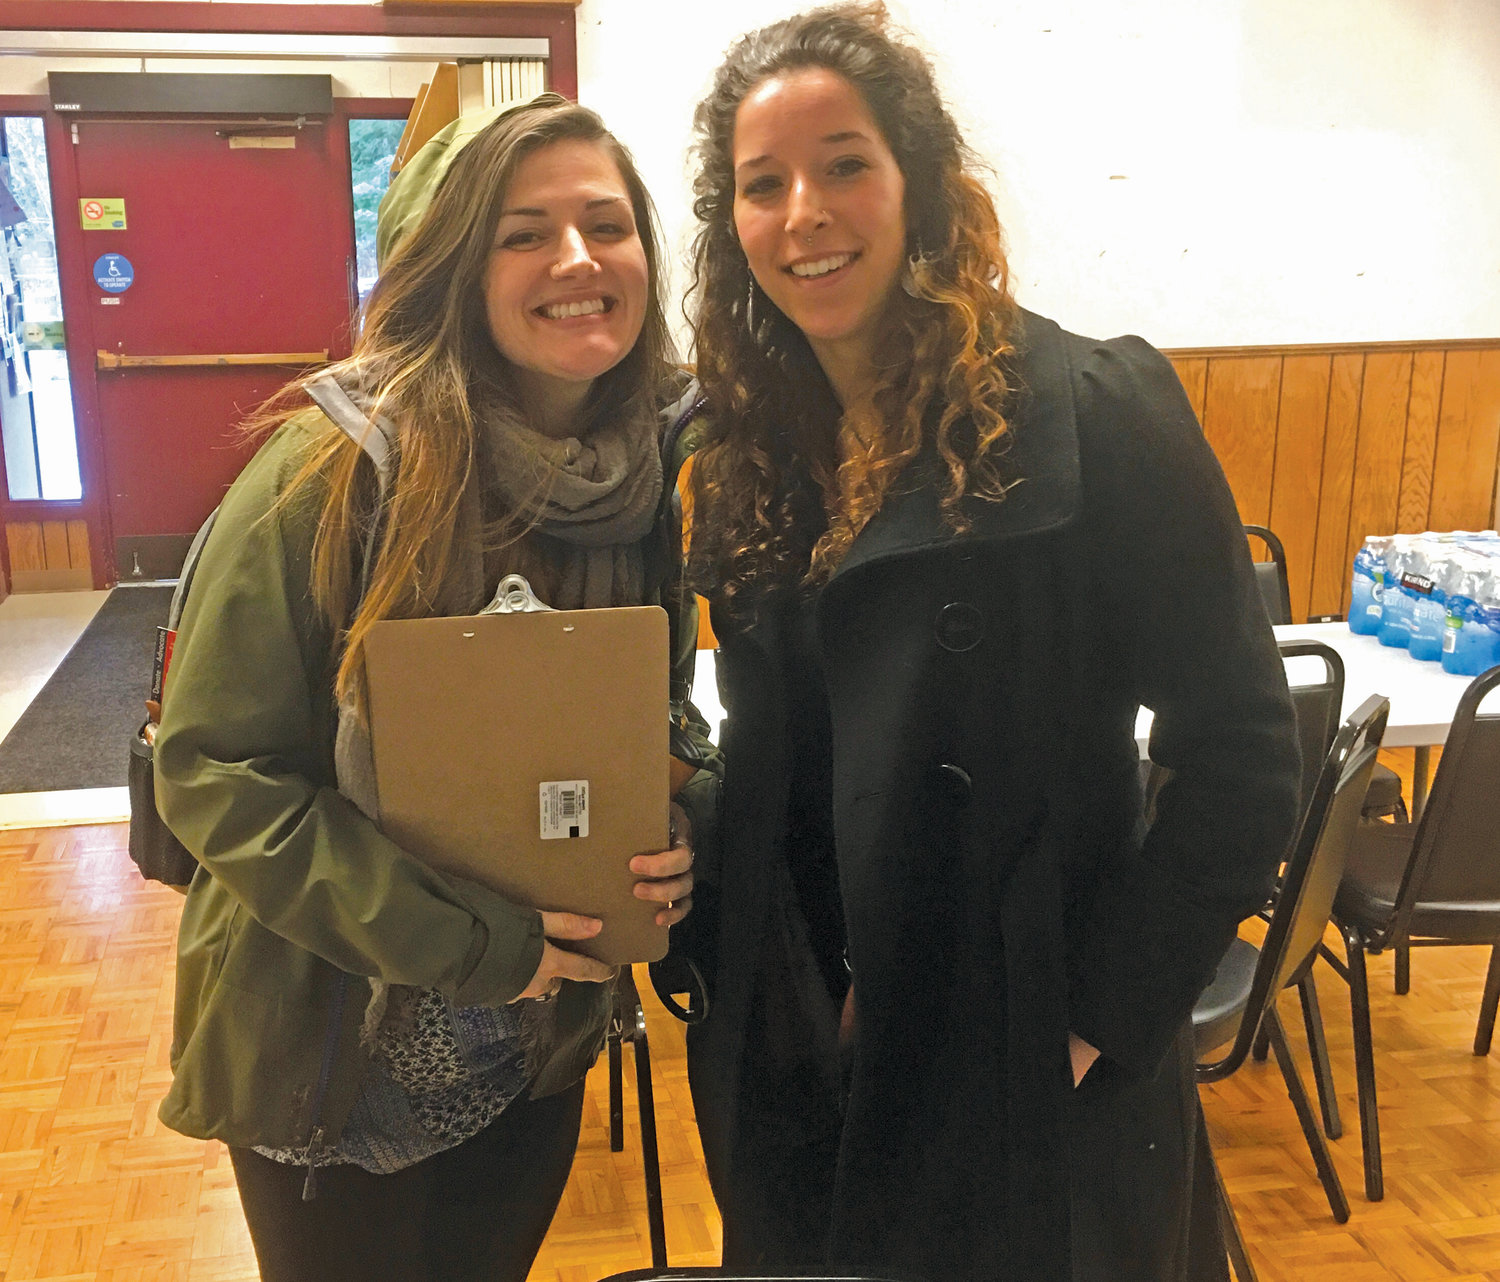 Samantha Troxler, a housing manager and operations manager at OlyCAP and Rebecca Ramsey, who is leading a youth project at OlyCAP volunteered at the Tri-Area Community Center to engage people in the Point-In-Time count. Photo courtesy Allison Arthur